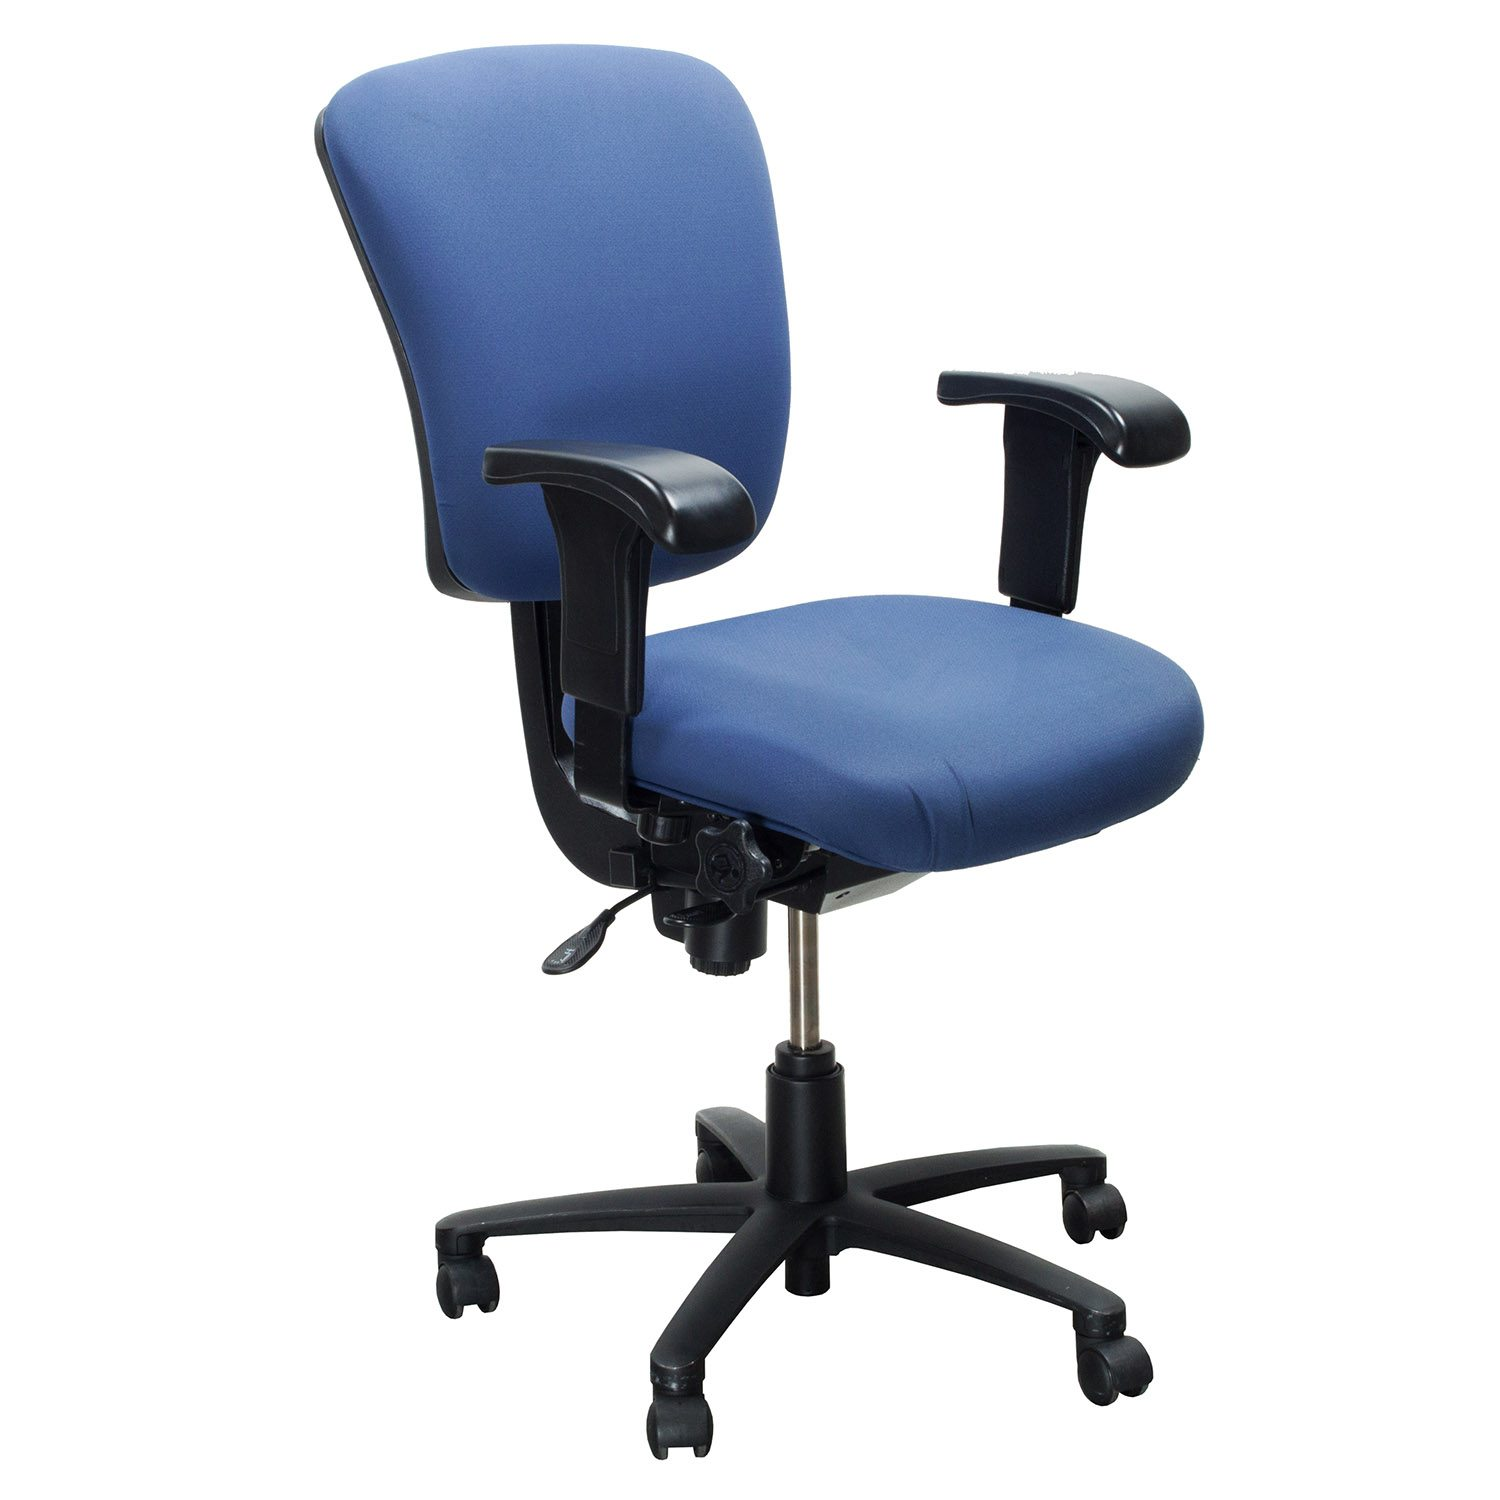 light blue desk chair wisconsin union chairs ergonomic comfort design vive lite 1300js used task